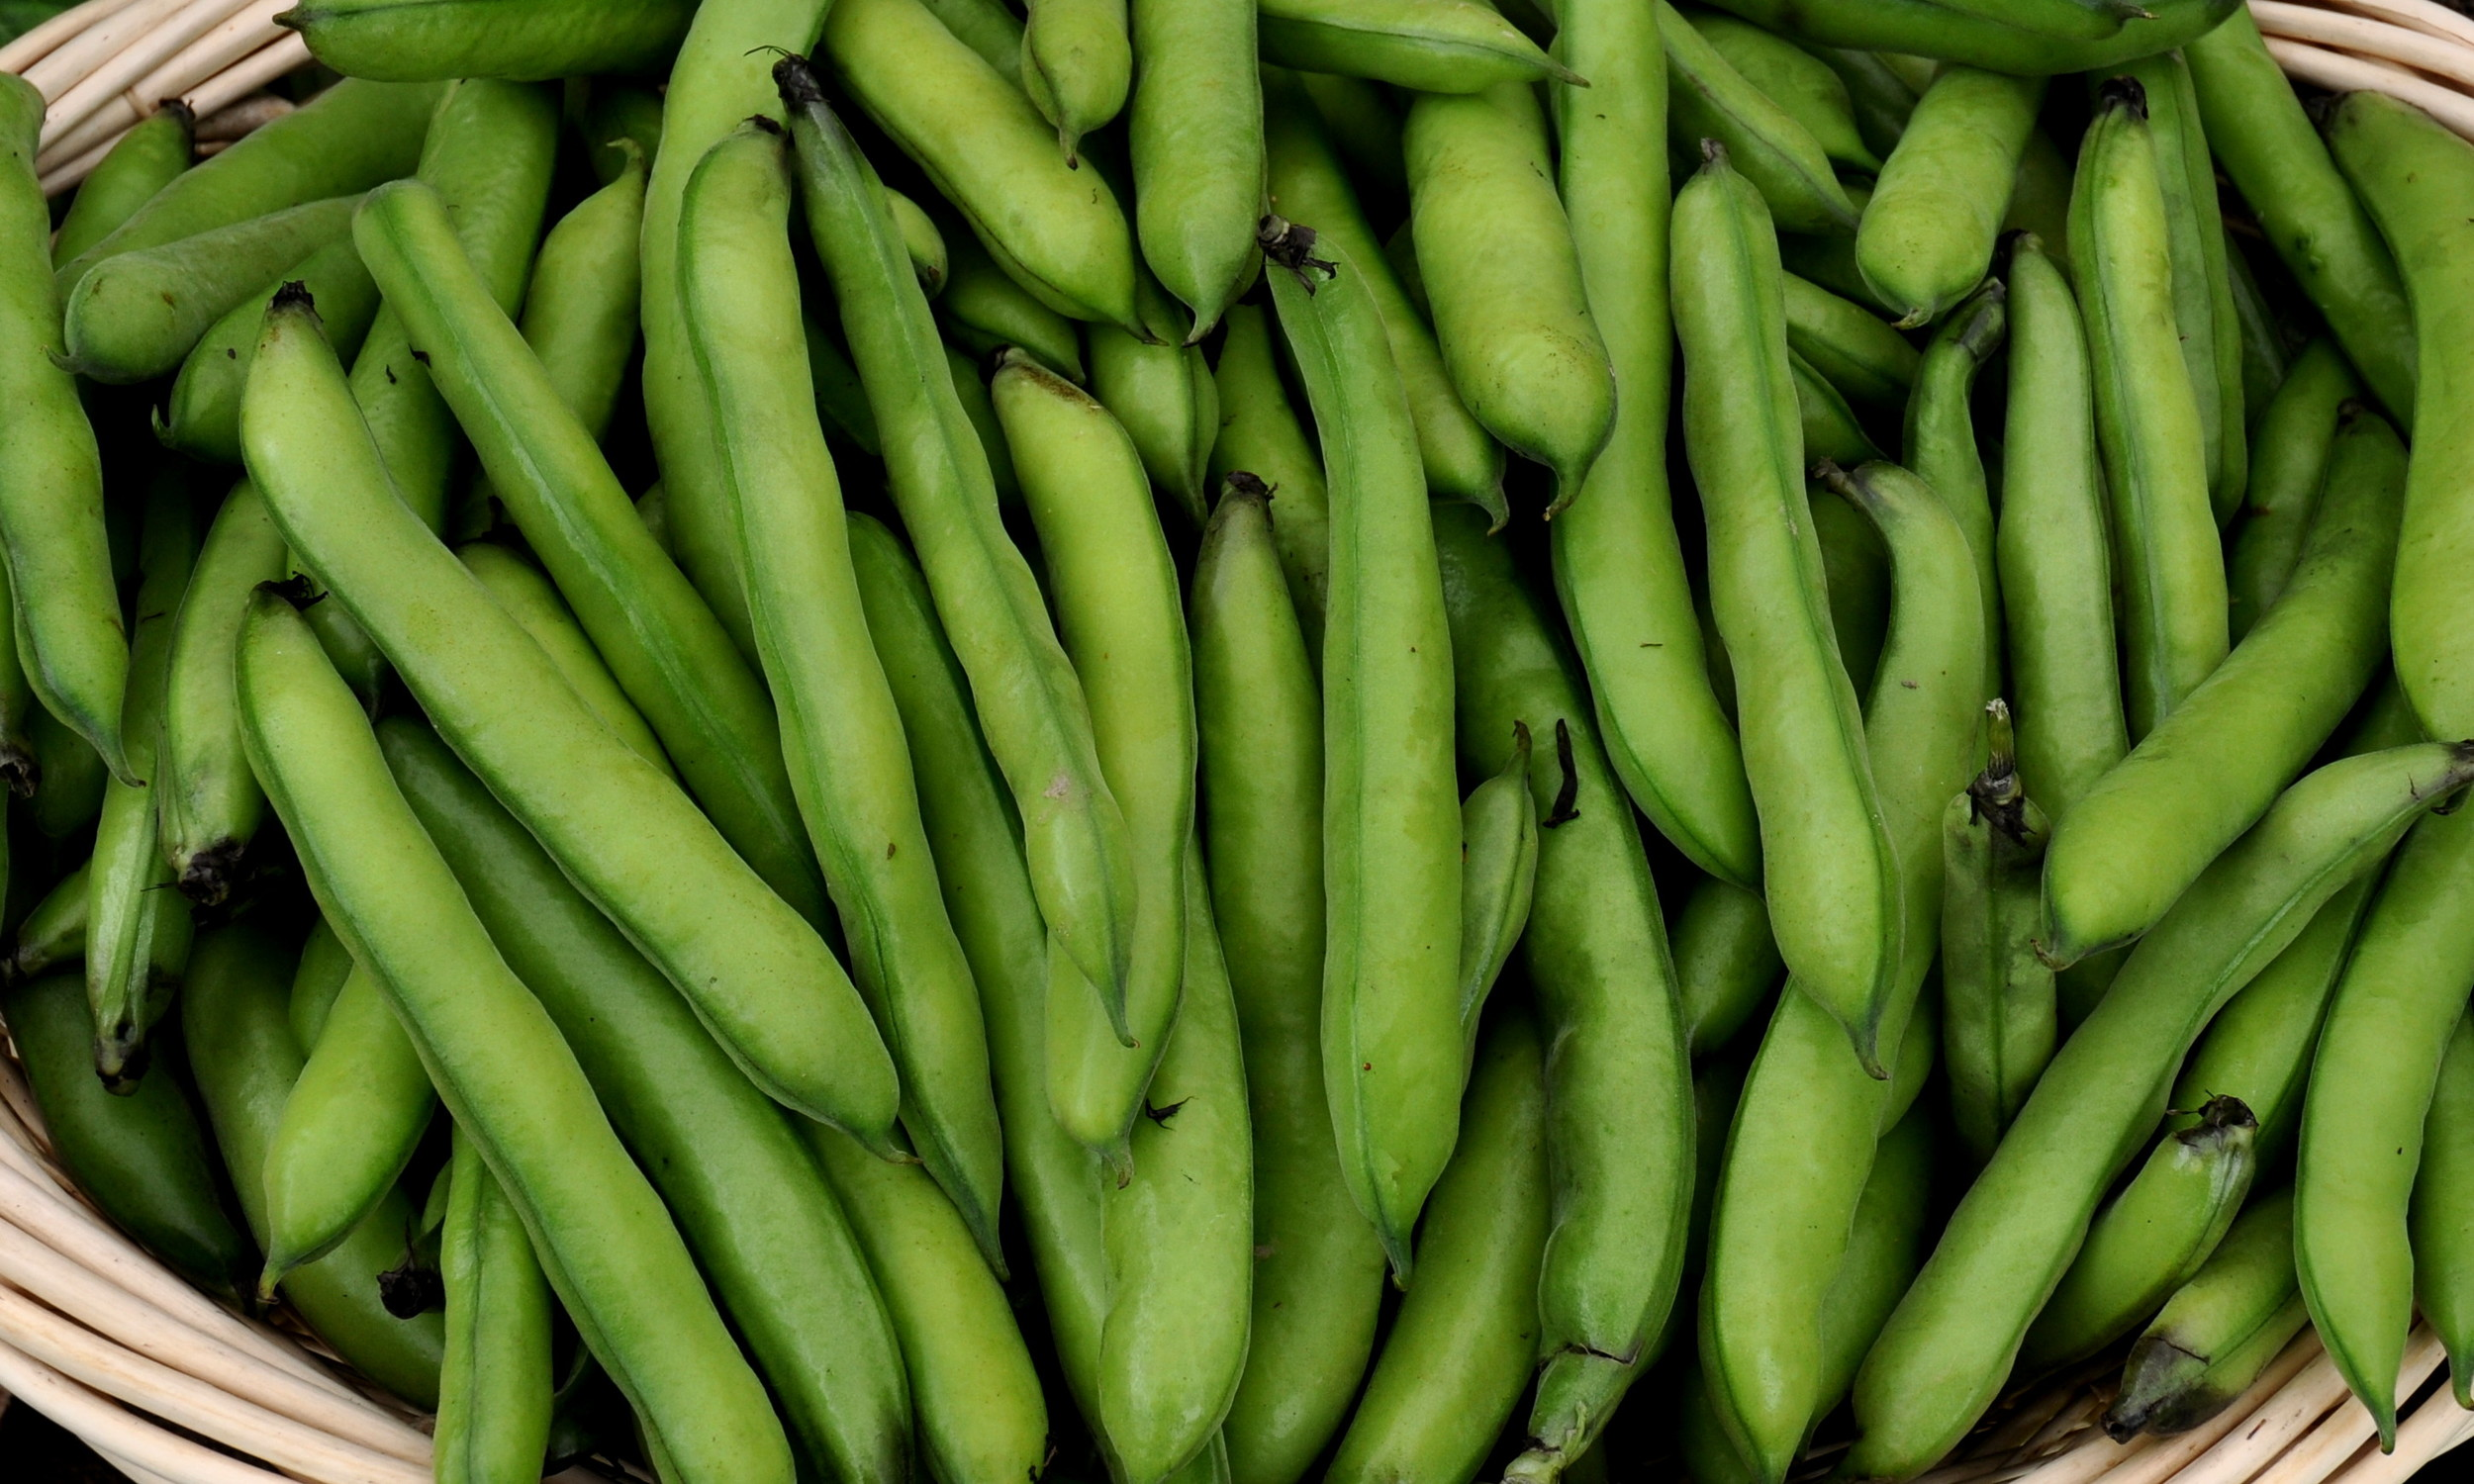 Fava beans from One Leaf Farm. Photo copyright 2013 by Zachary D. Lyons.